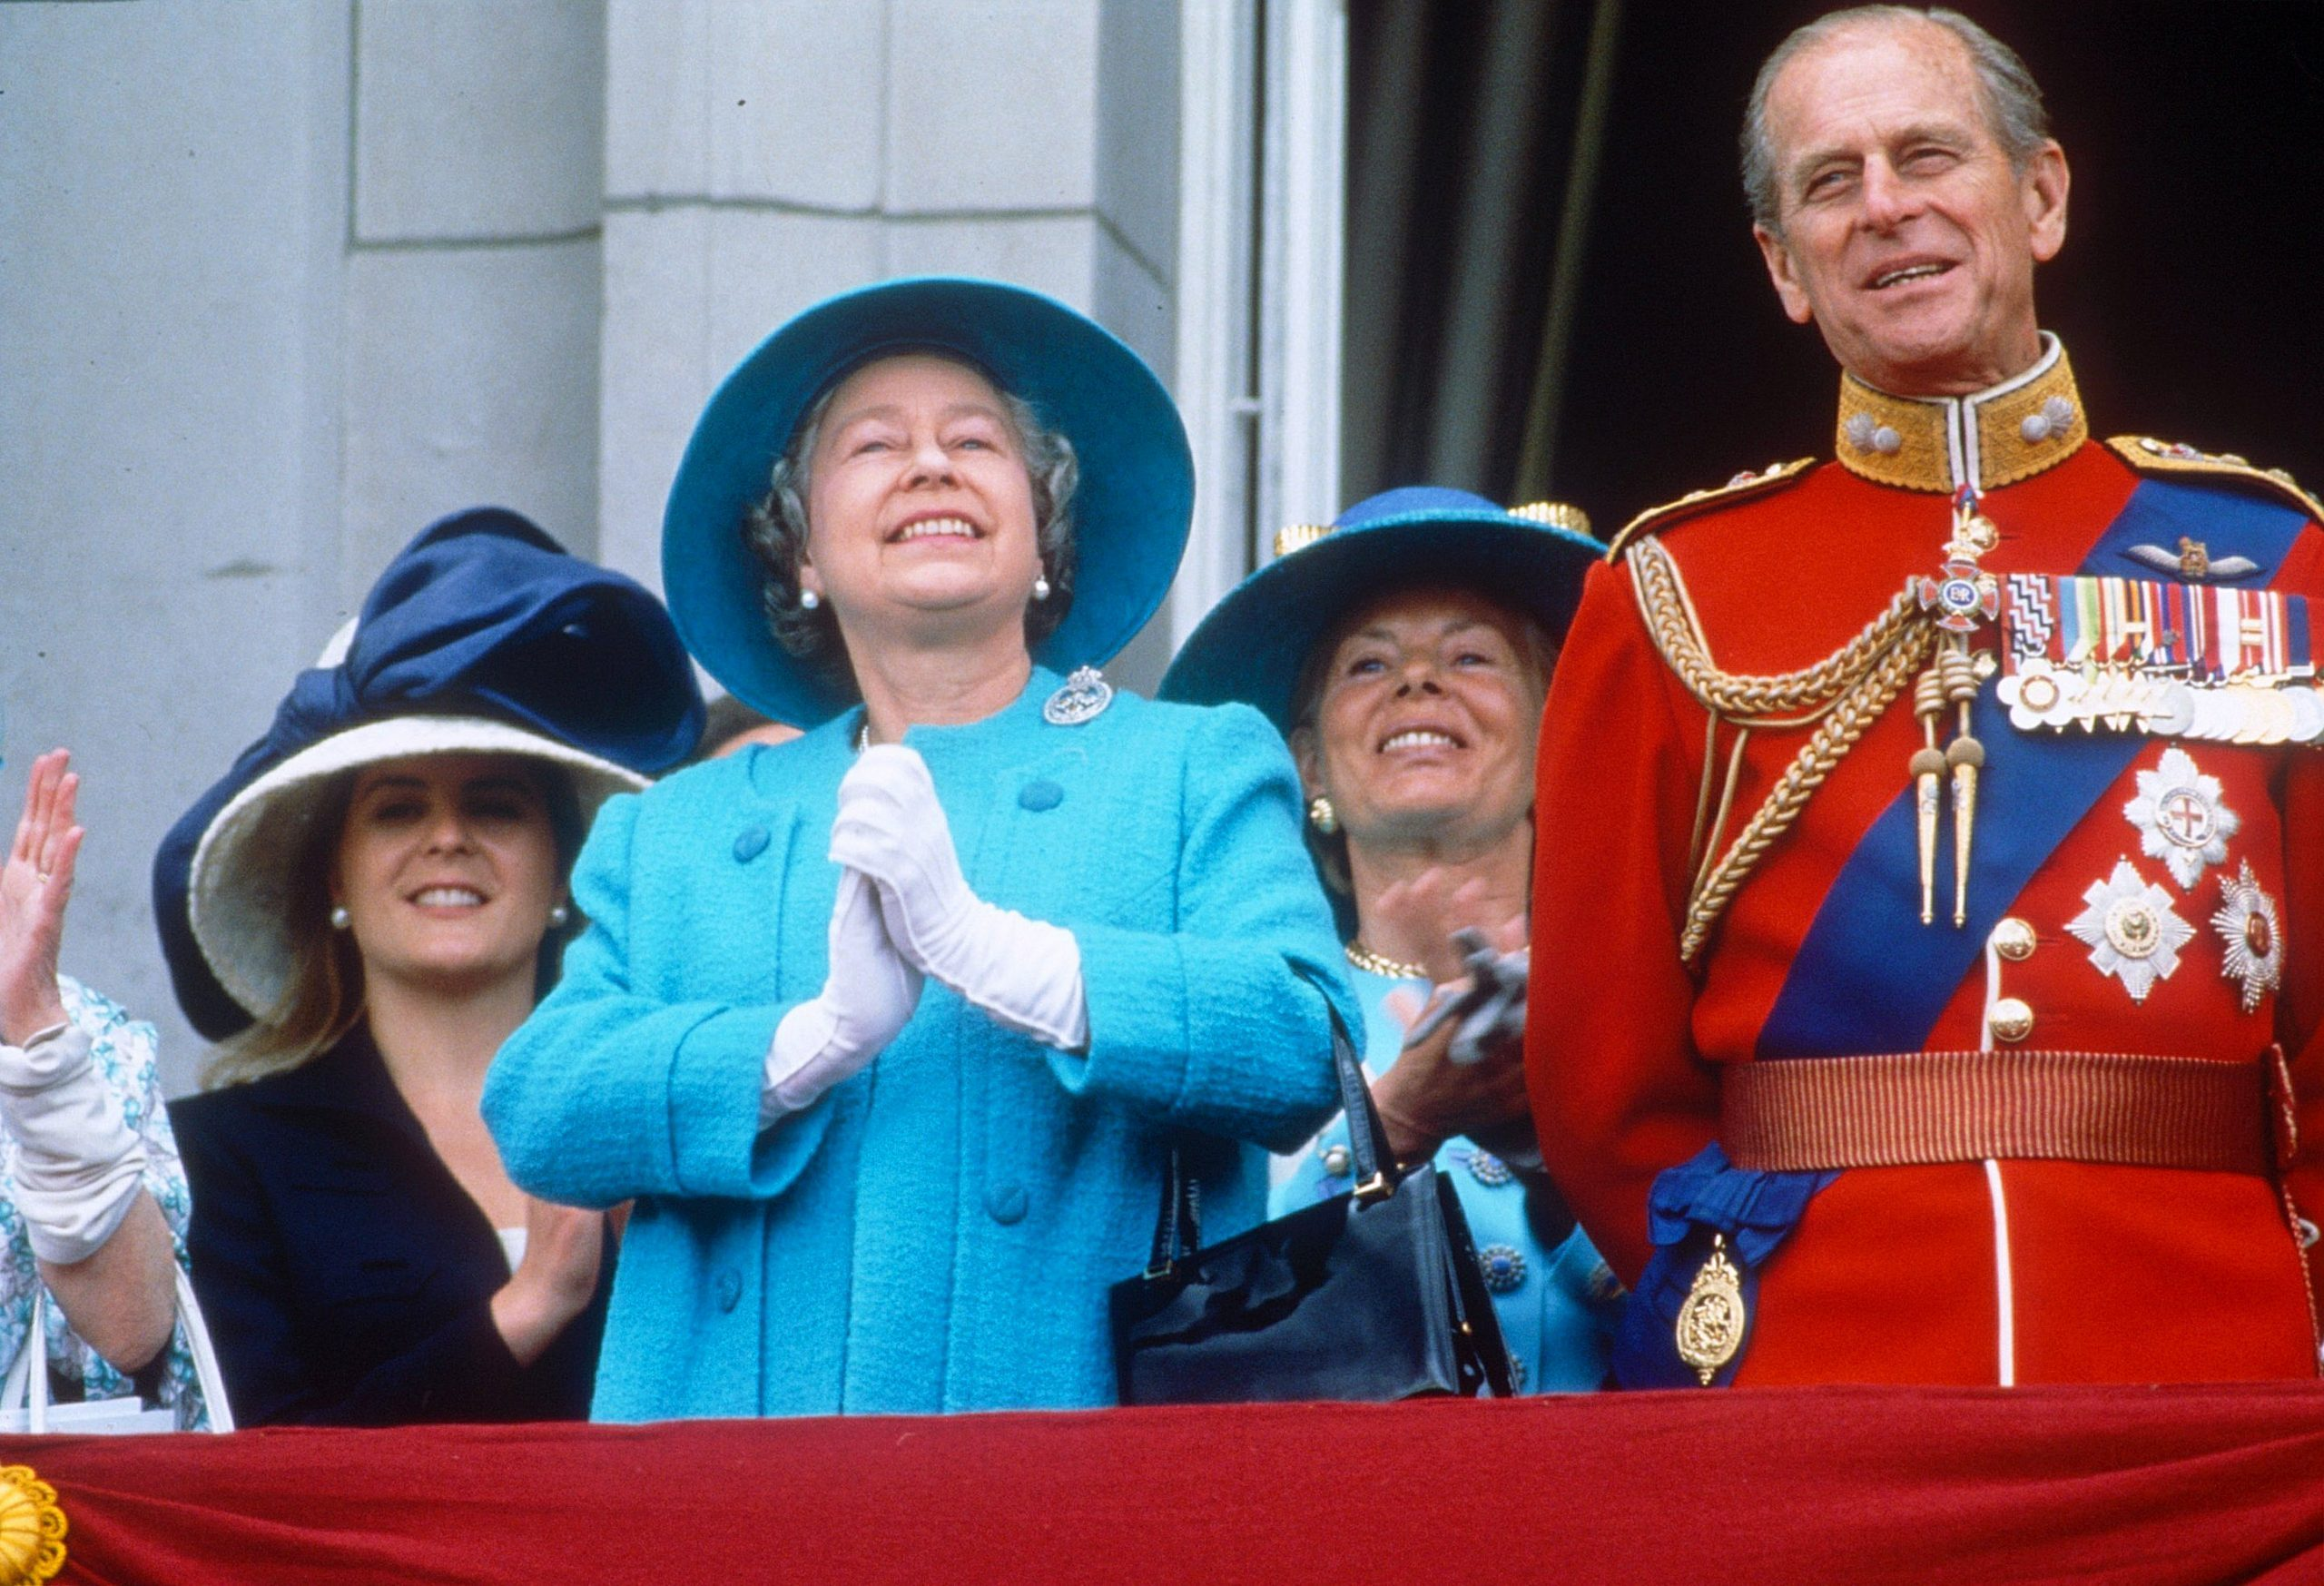 TROOPING THE COLOUR, BUCKINGHAM PALACE, LONDON, BRITAIN - 1993